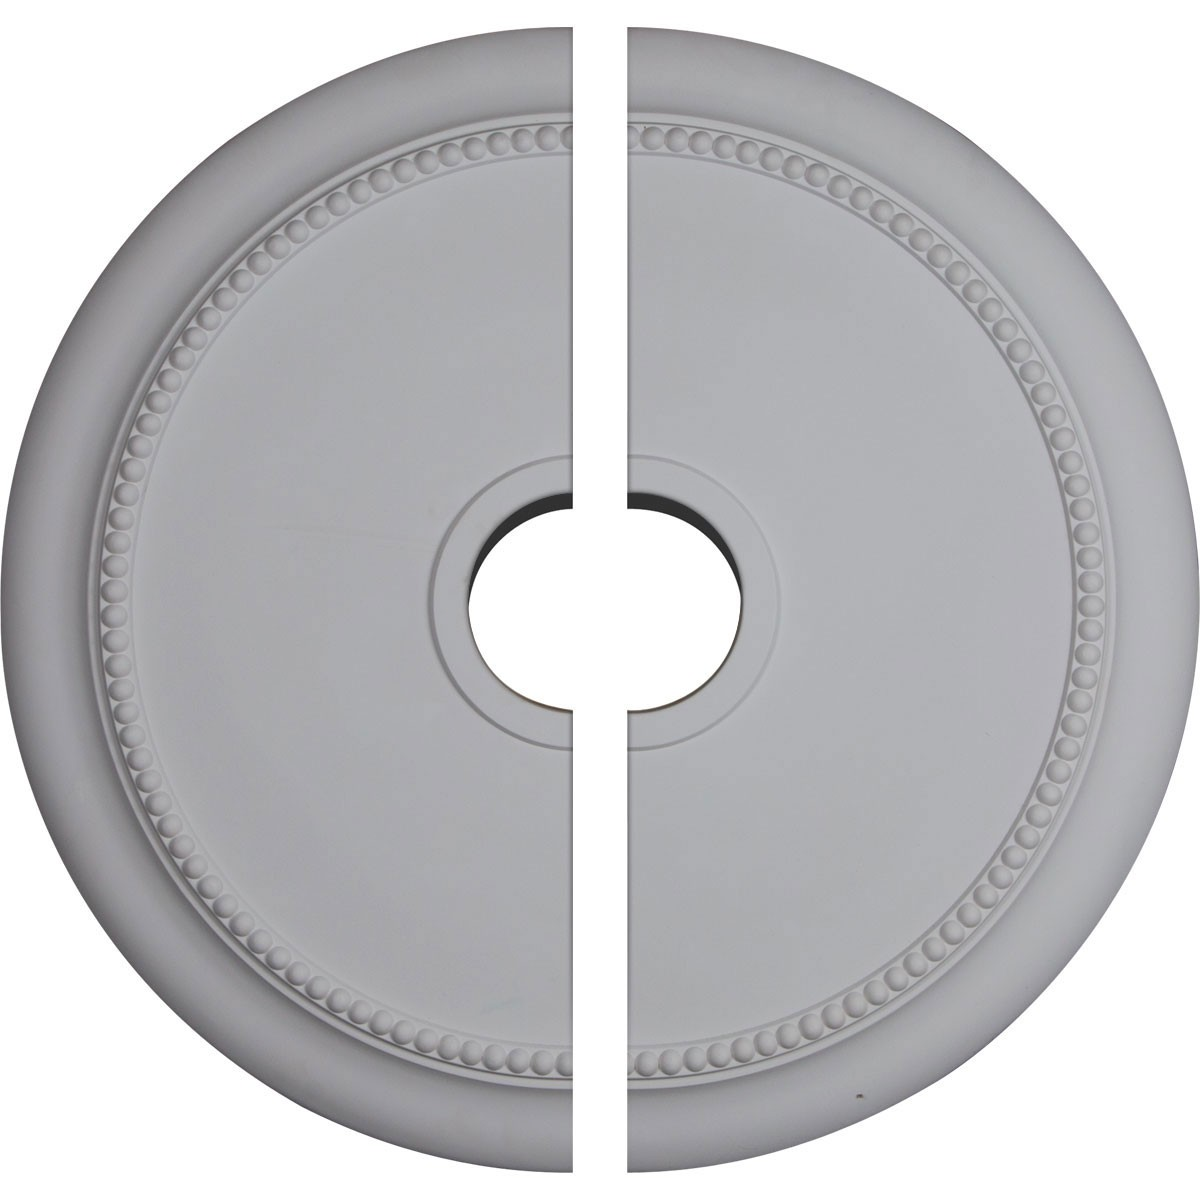 """EM-CM24CR2 - 24 1/8""""OD x 4 3/8""""ID x 2 1/4""""P Crendon Ceiling Medallion, Two Piece (Fits Canopies up to 4 3/8"""")"""